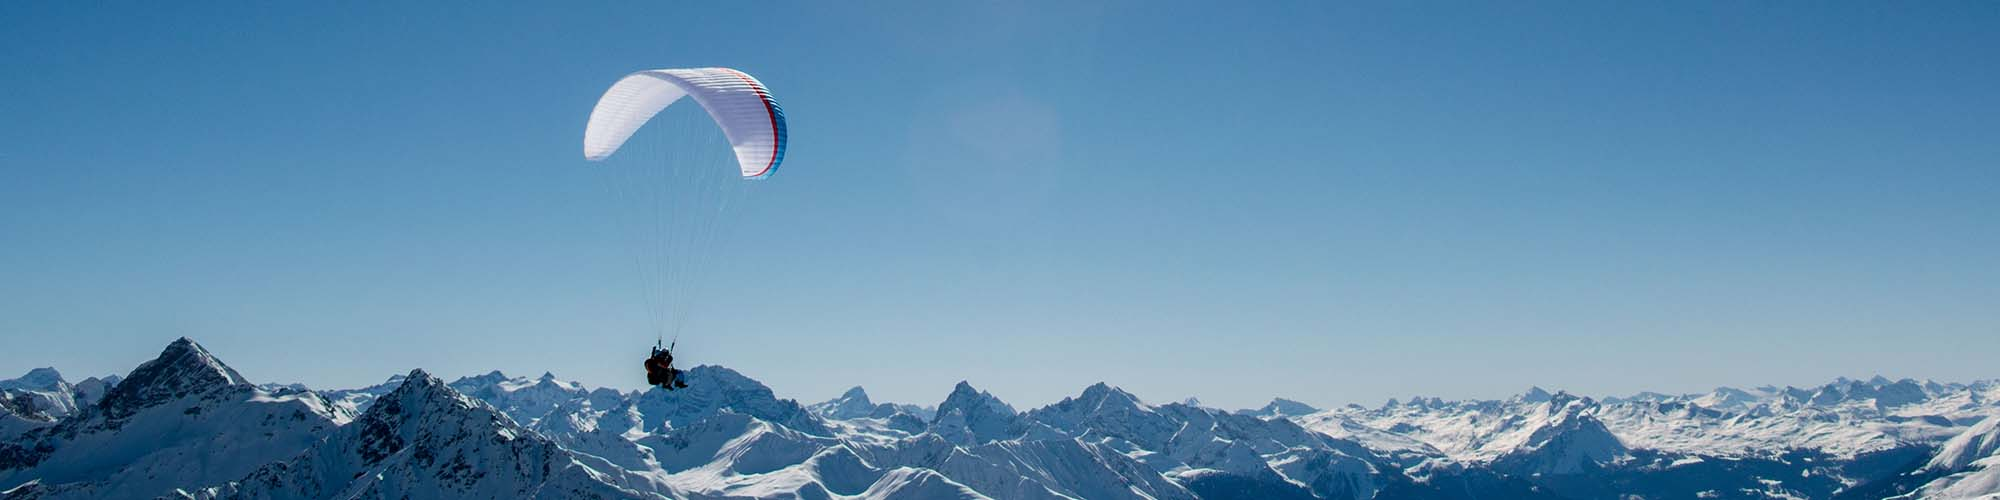 Hotel Davos - Skispecial - with Paragliding